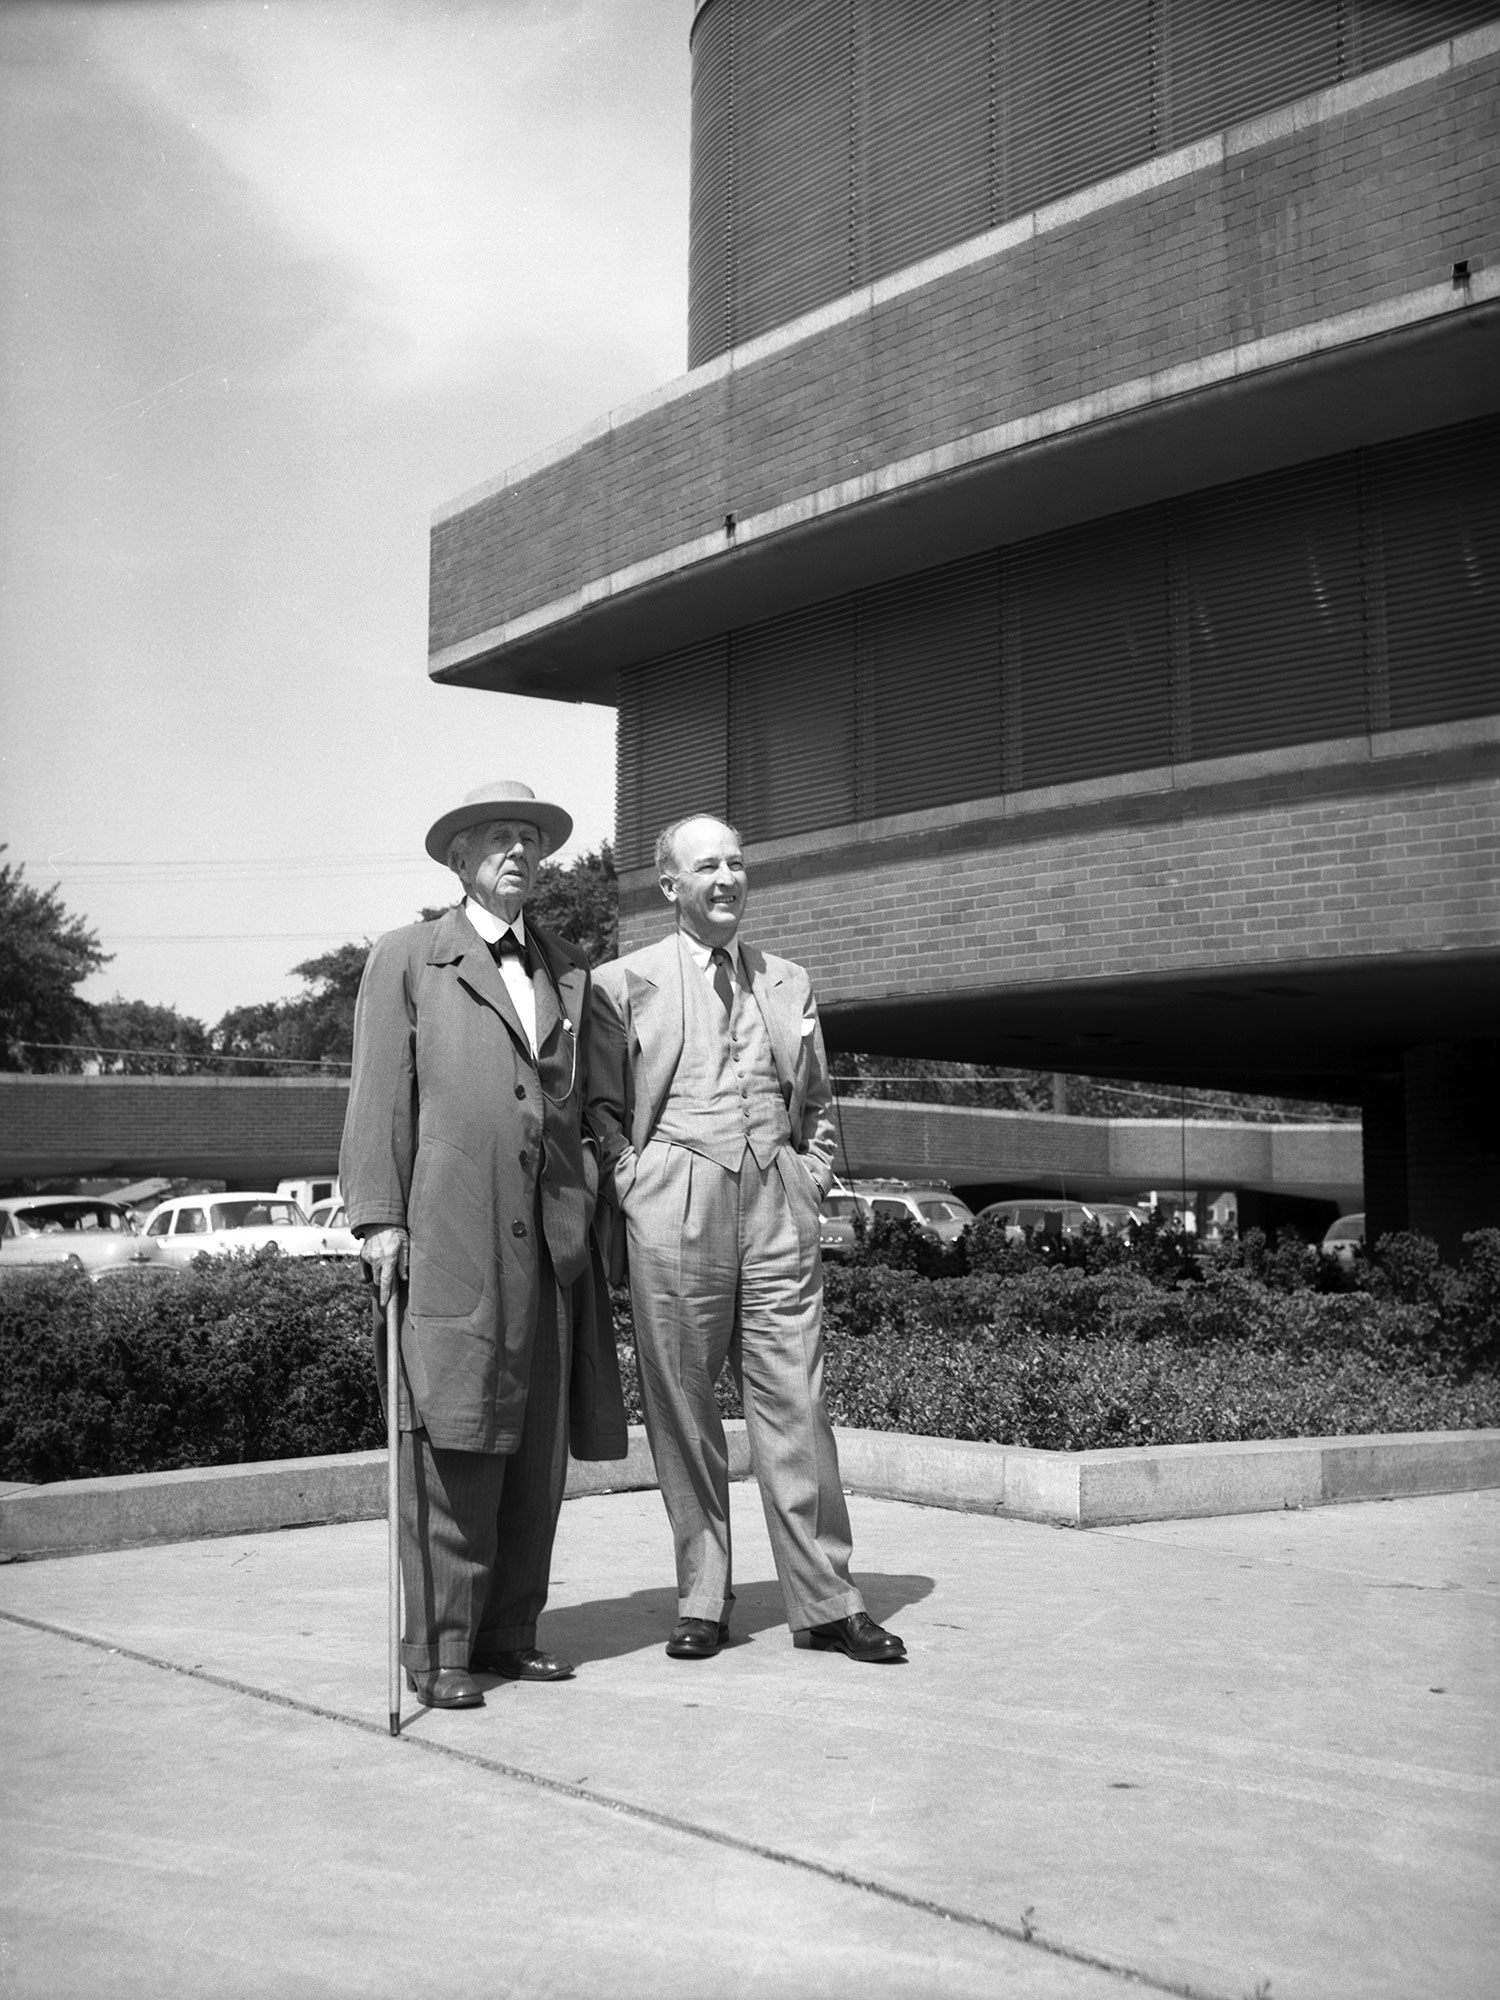 H.F. Johnson jr. met Frank Lloyd Wright